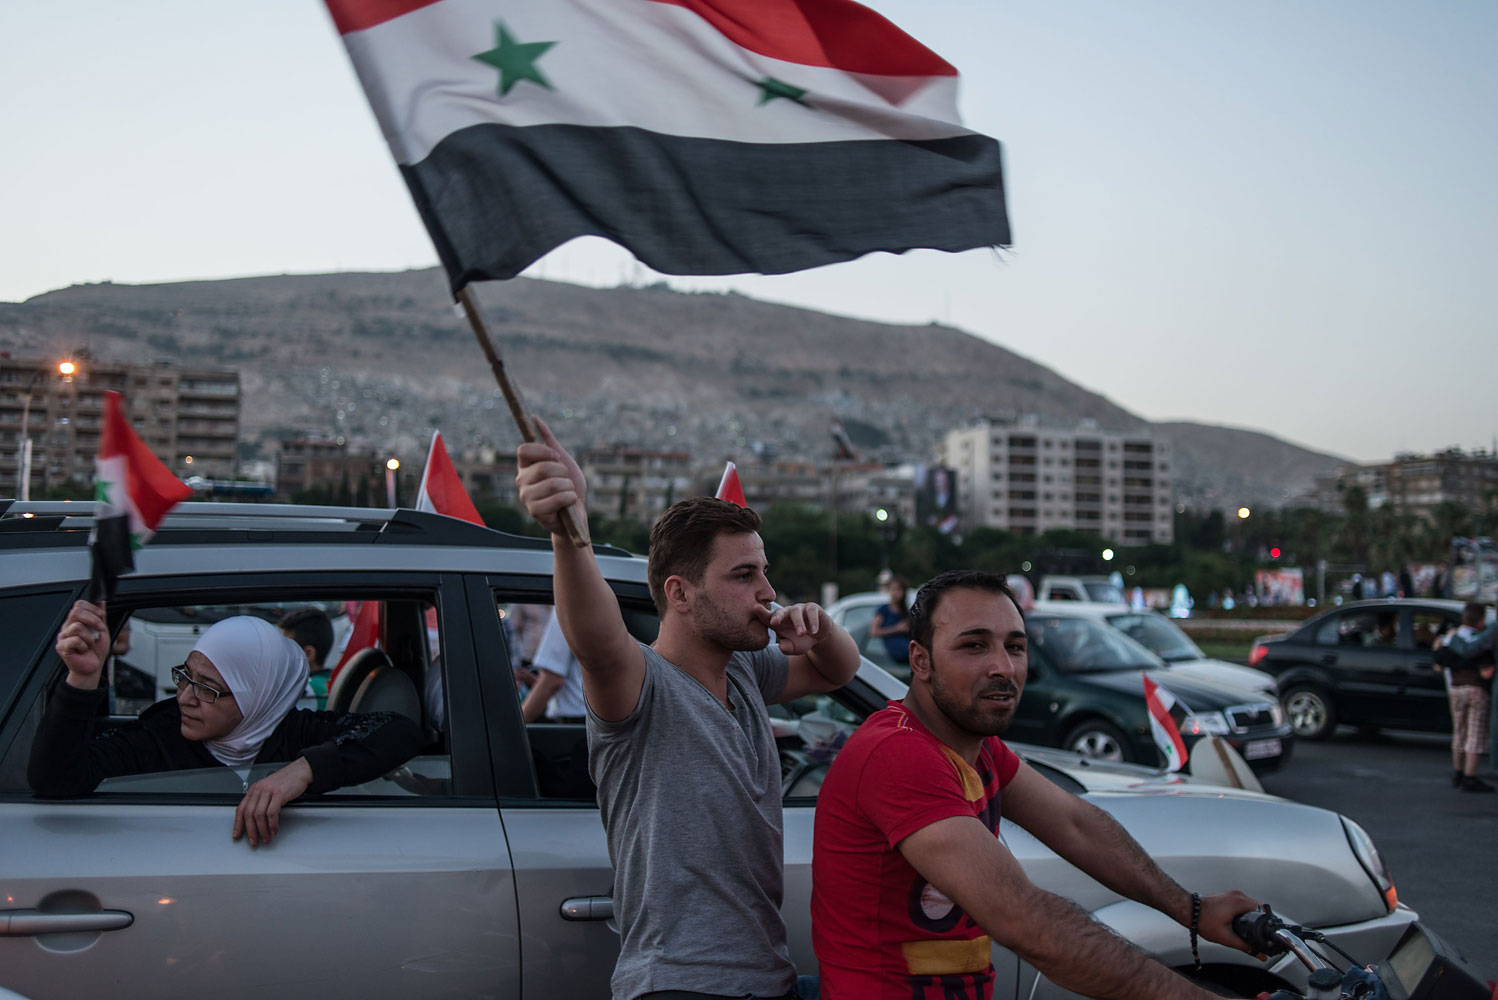 Syrian supporters of presidential candidate Bashar al-Assad wave Syrian national flags during a rally in Damascus, Syria, on May 30, 2014.